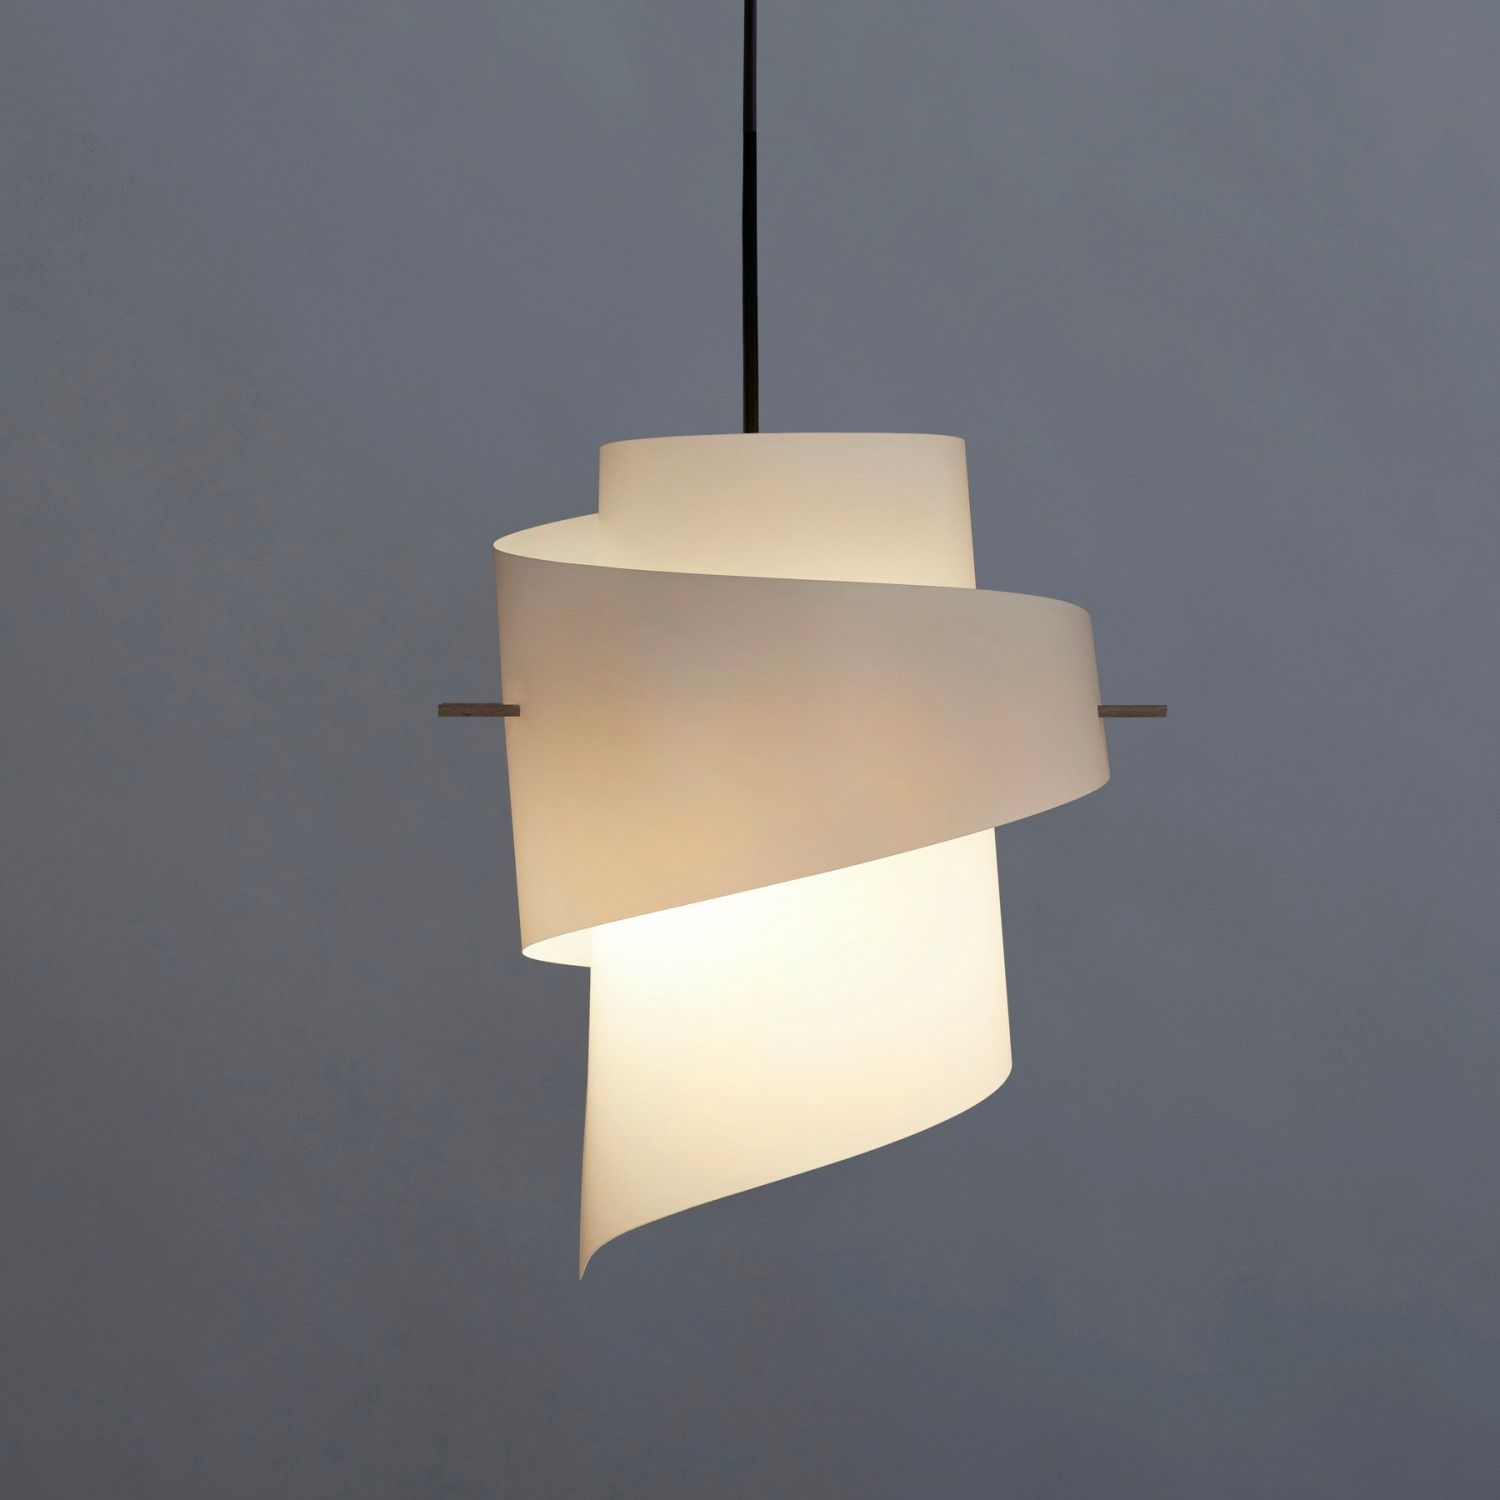 Designer Lampe Googles Billedresultat For Https://sw18700.smartweb-static.com/upload_dir/shop/hvid-plastik-mellem.jpg | Lampe, Diy Lampe, Lampe Design